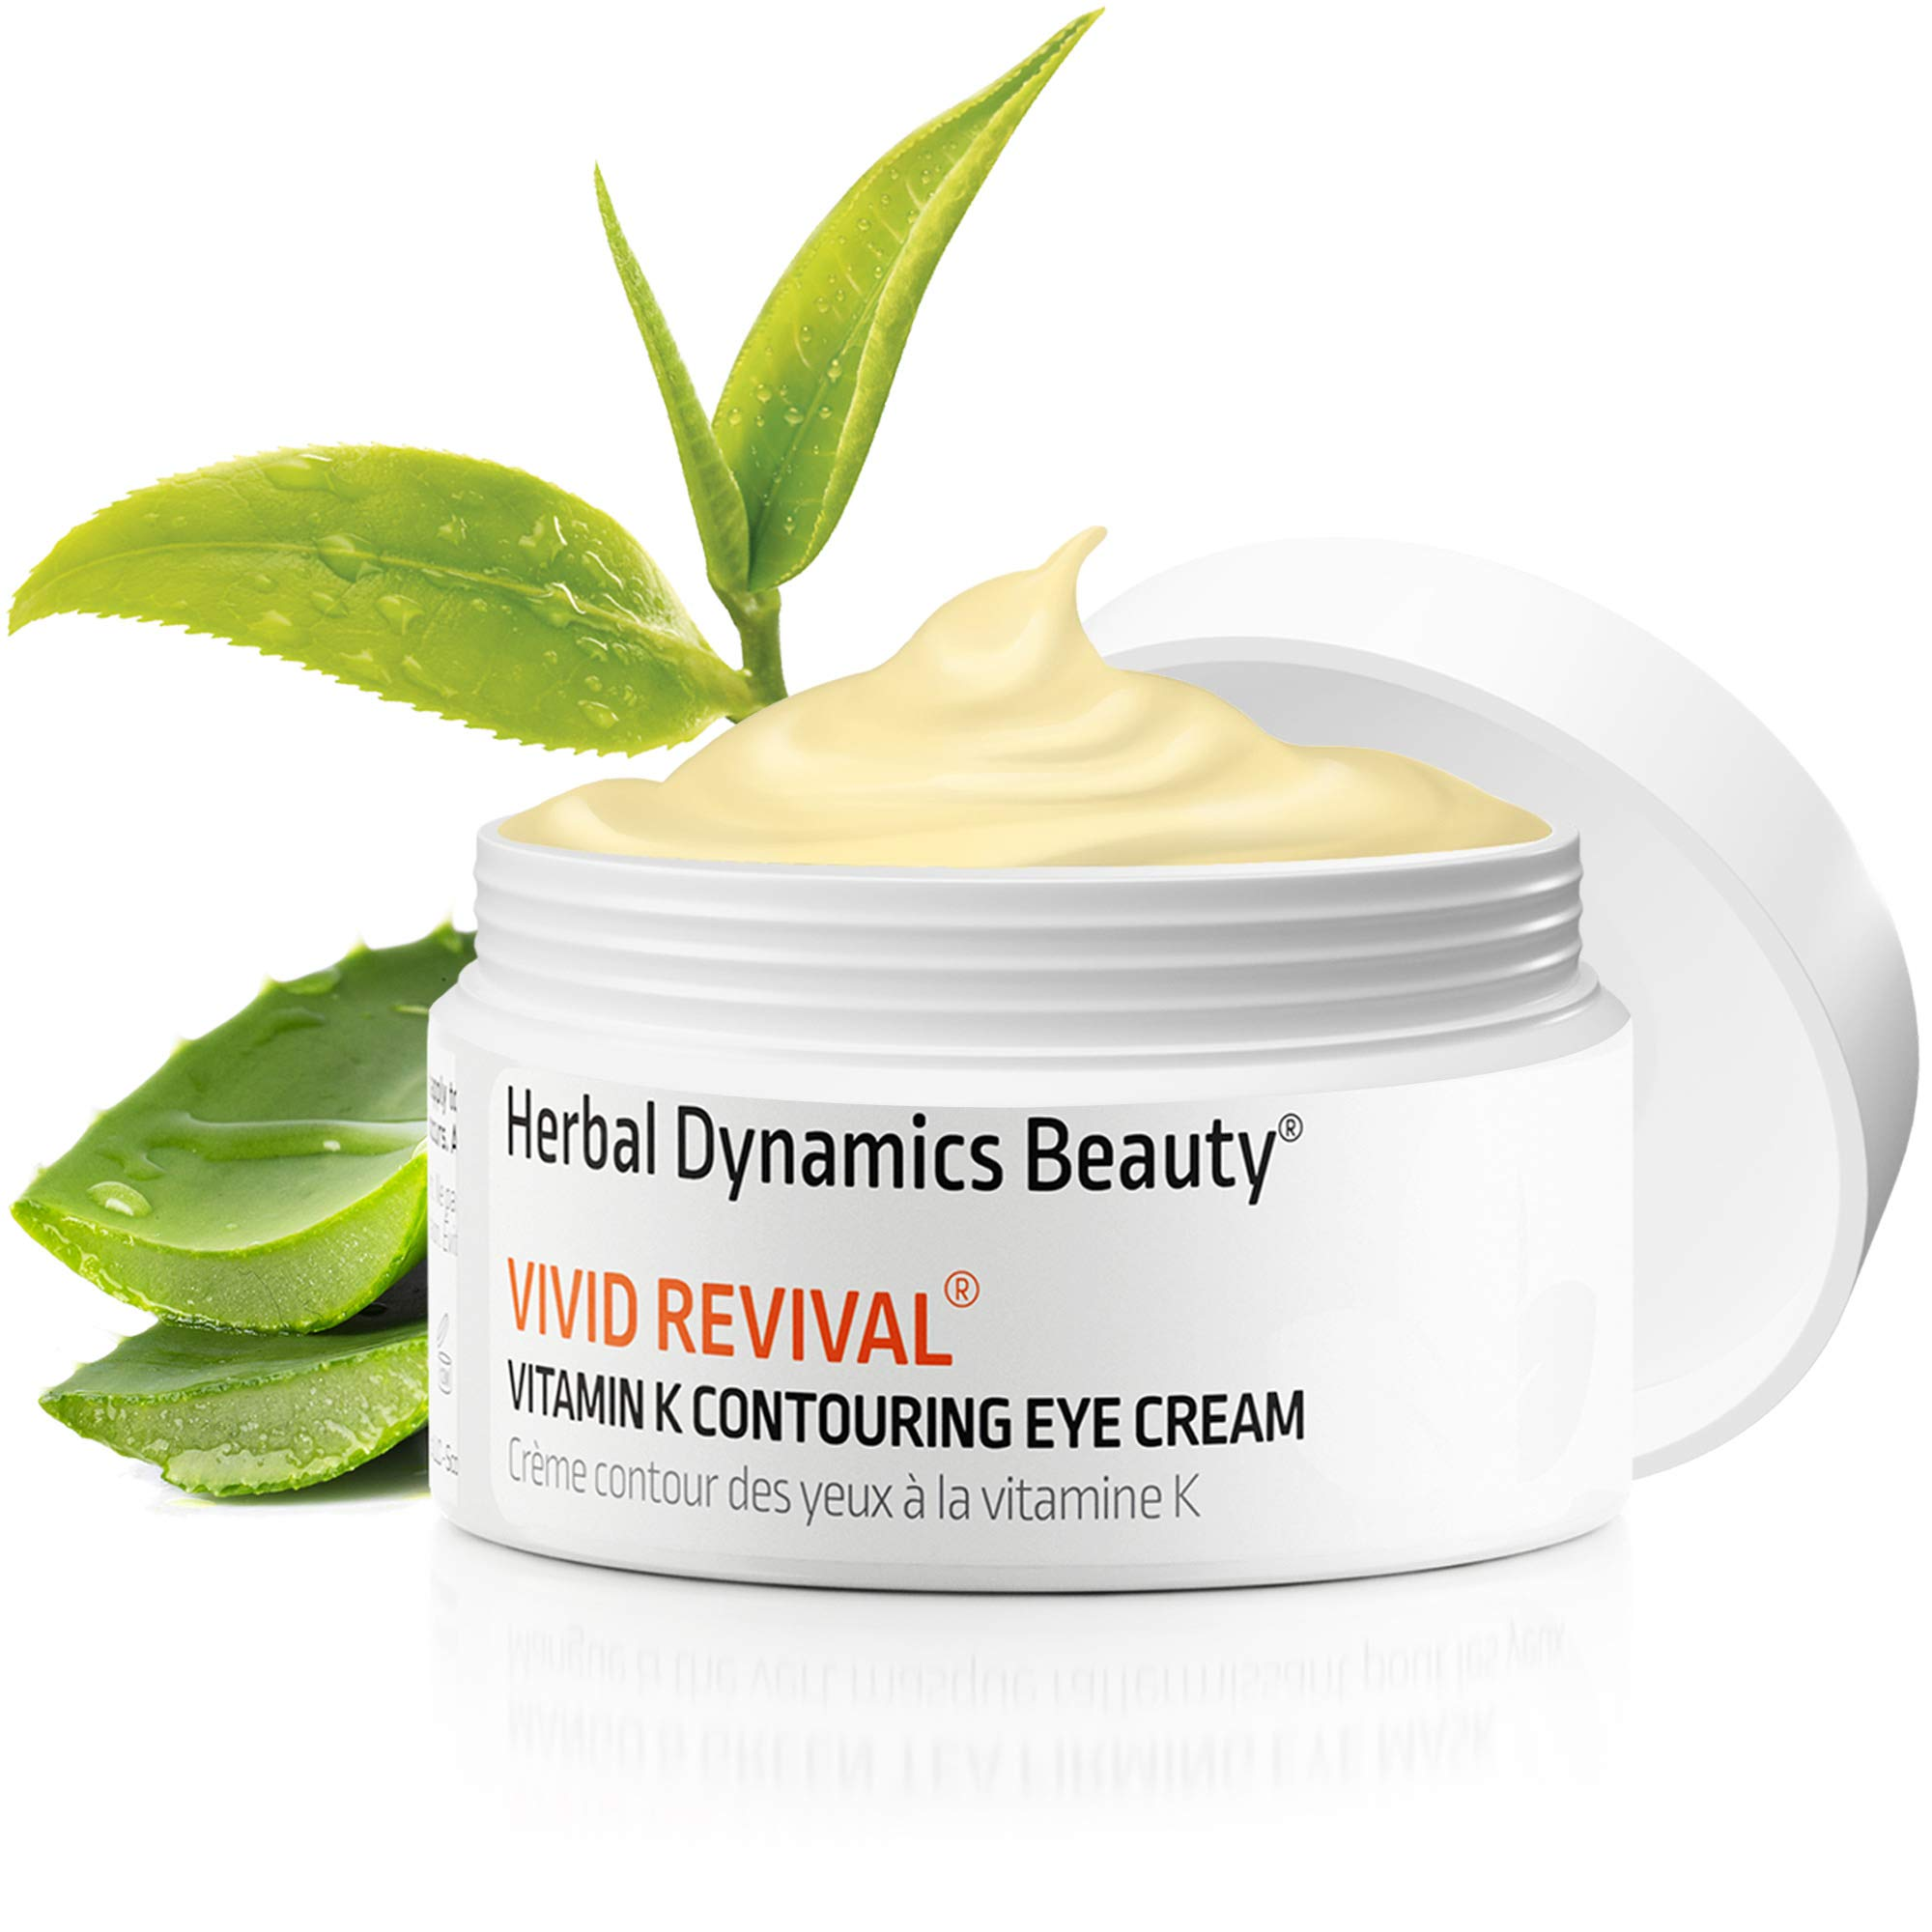 HD Beauty Vivid Revival Vitamin K Contouring Under Eye Cream for Undereye Circles, Puffiness, and Fine Lines with Hyaluronic Acid and Organic Aloe Vera, 0.5oz